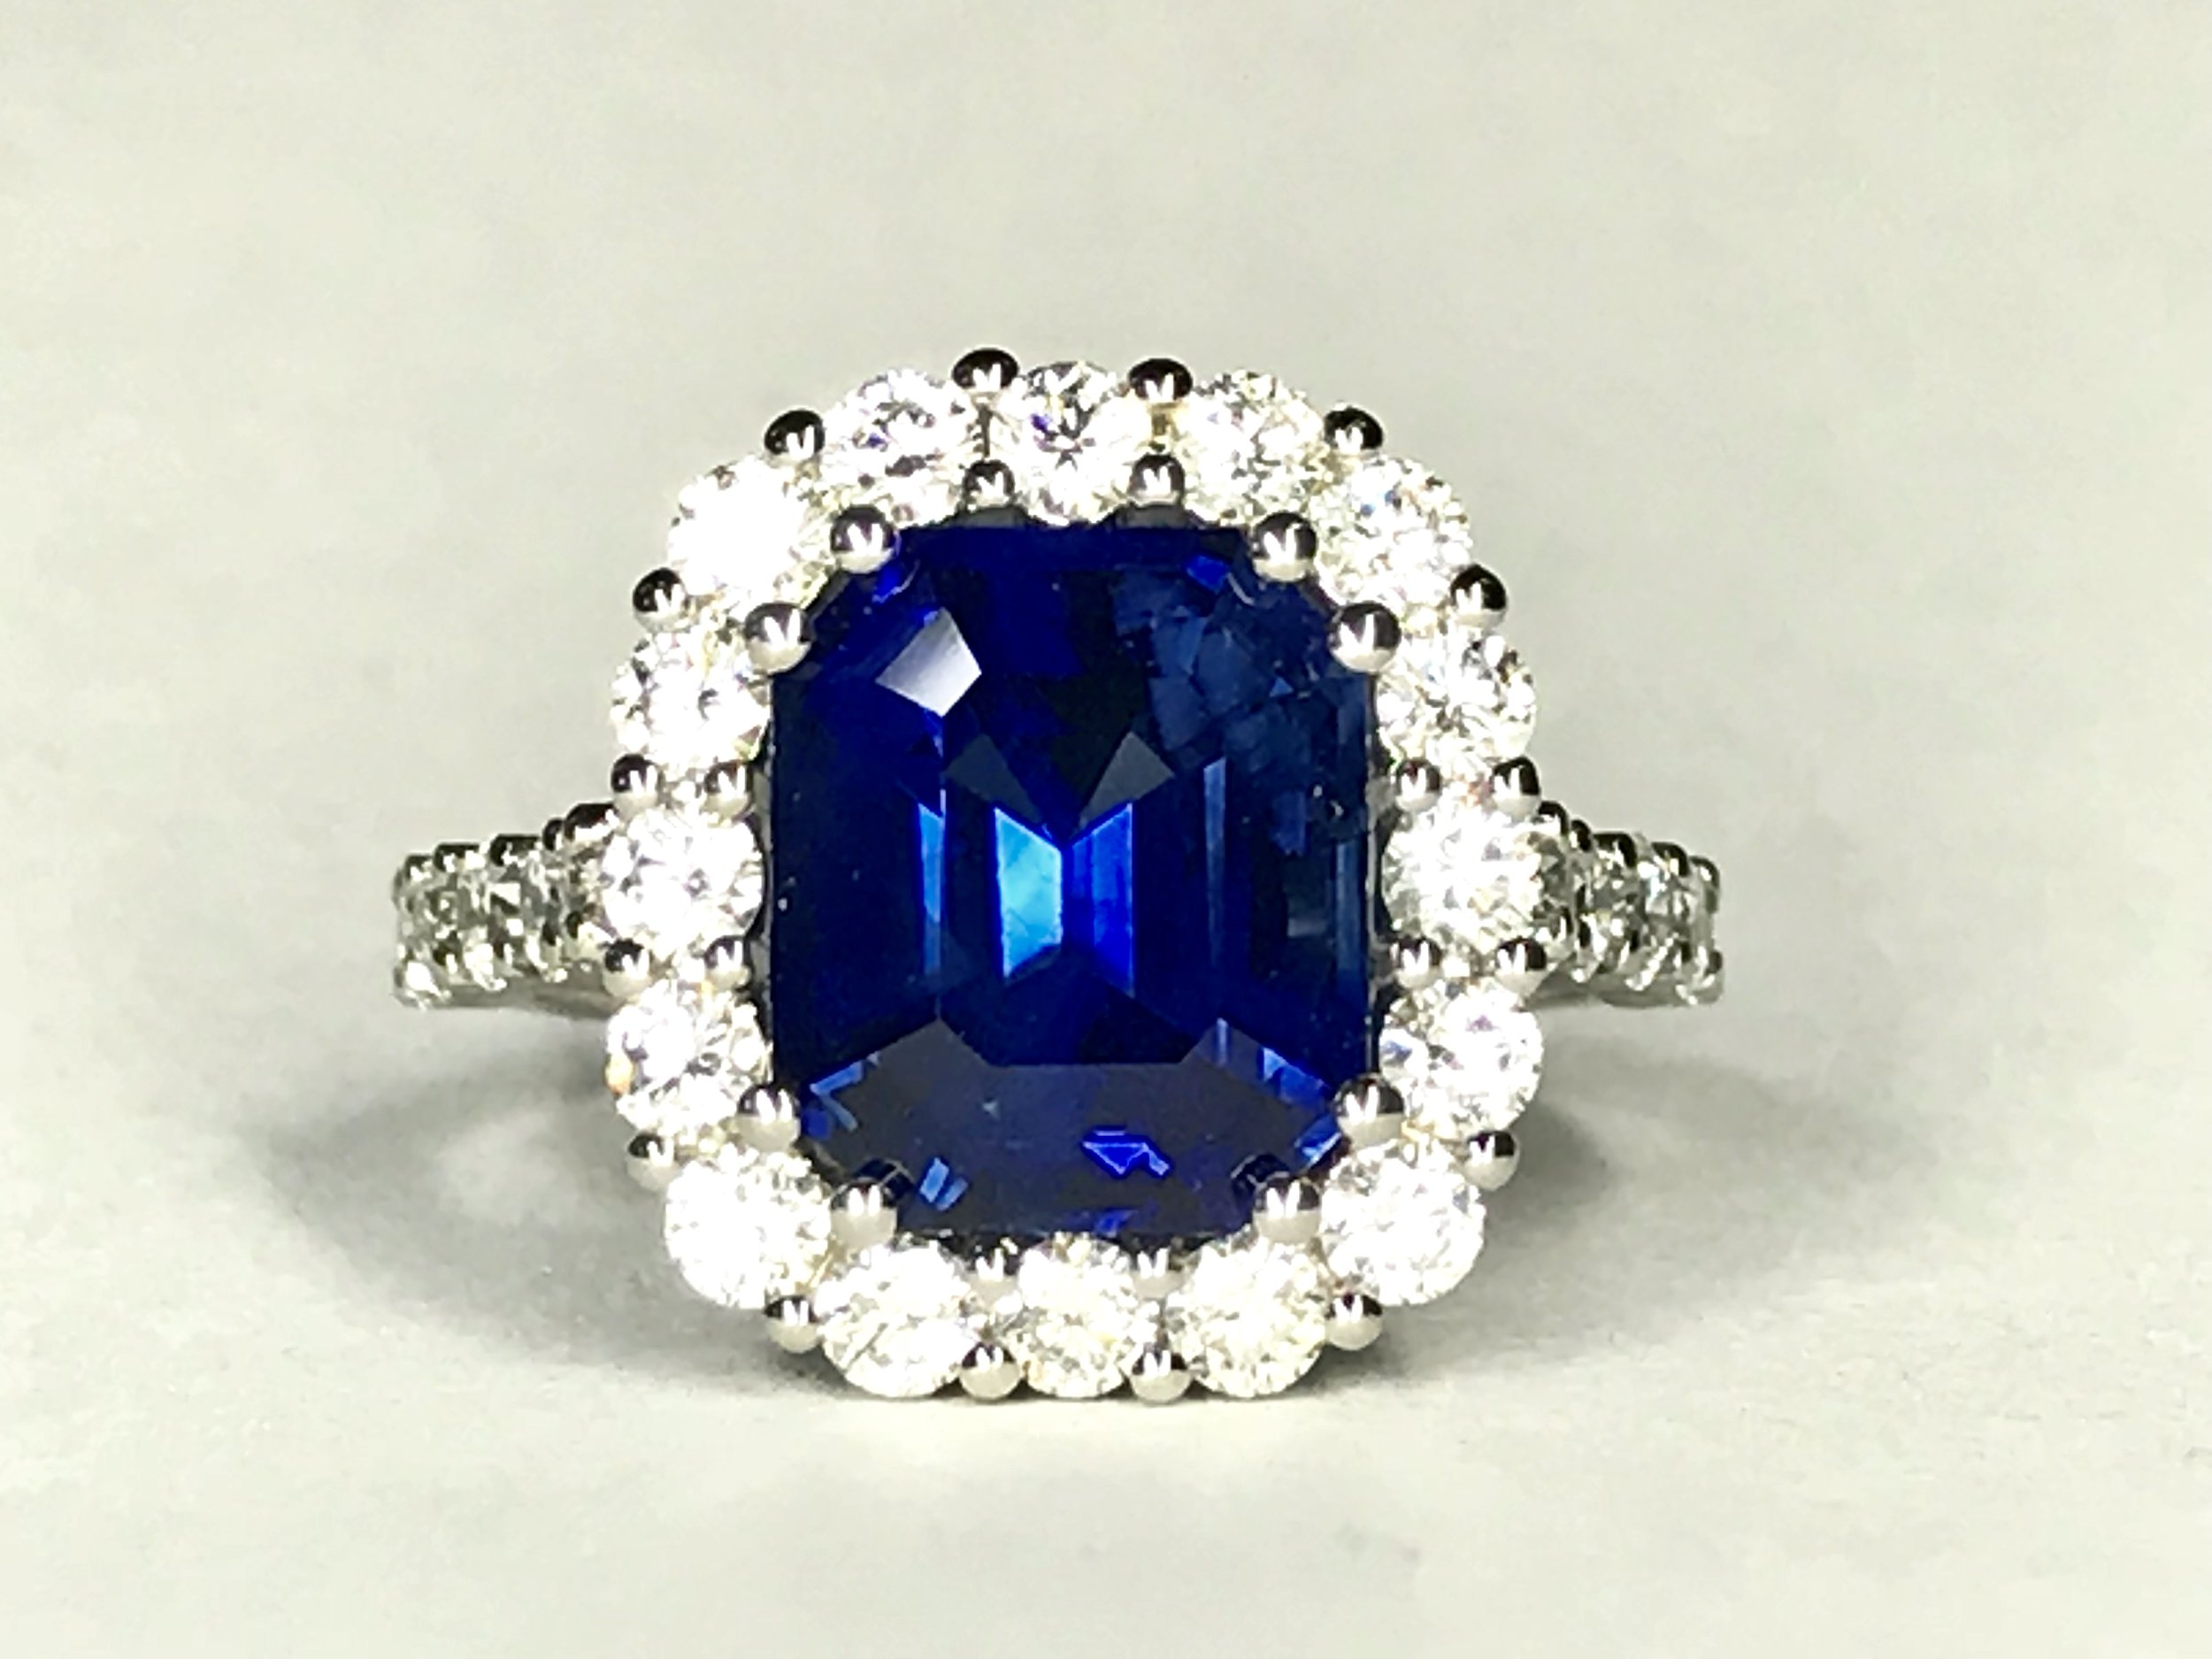 Copy of 5.03ct sapphire and diamond 1.03ct modern style claw set platinum cluster ring.  Made in Chichester, England.